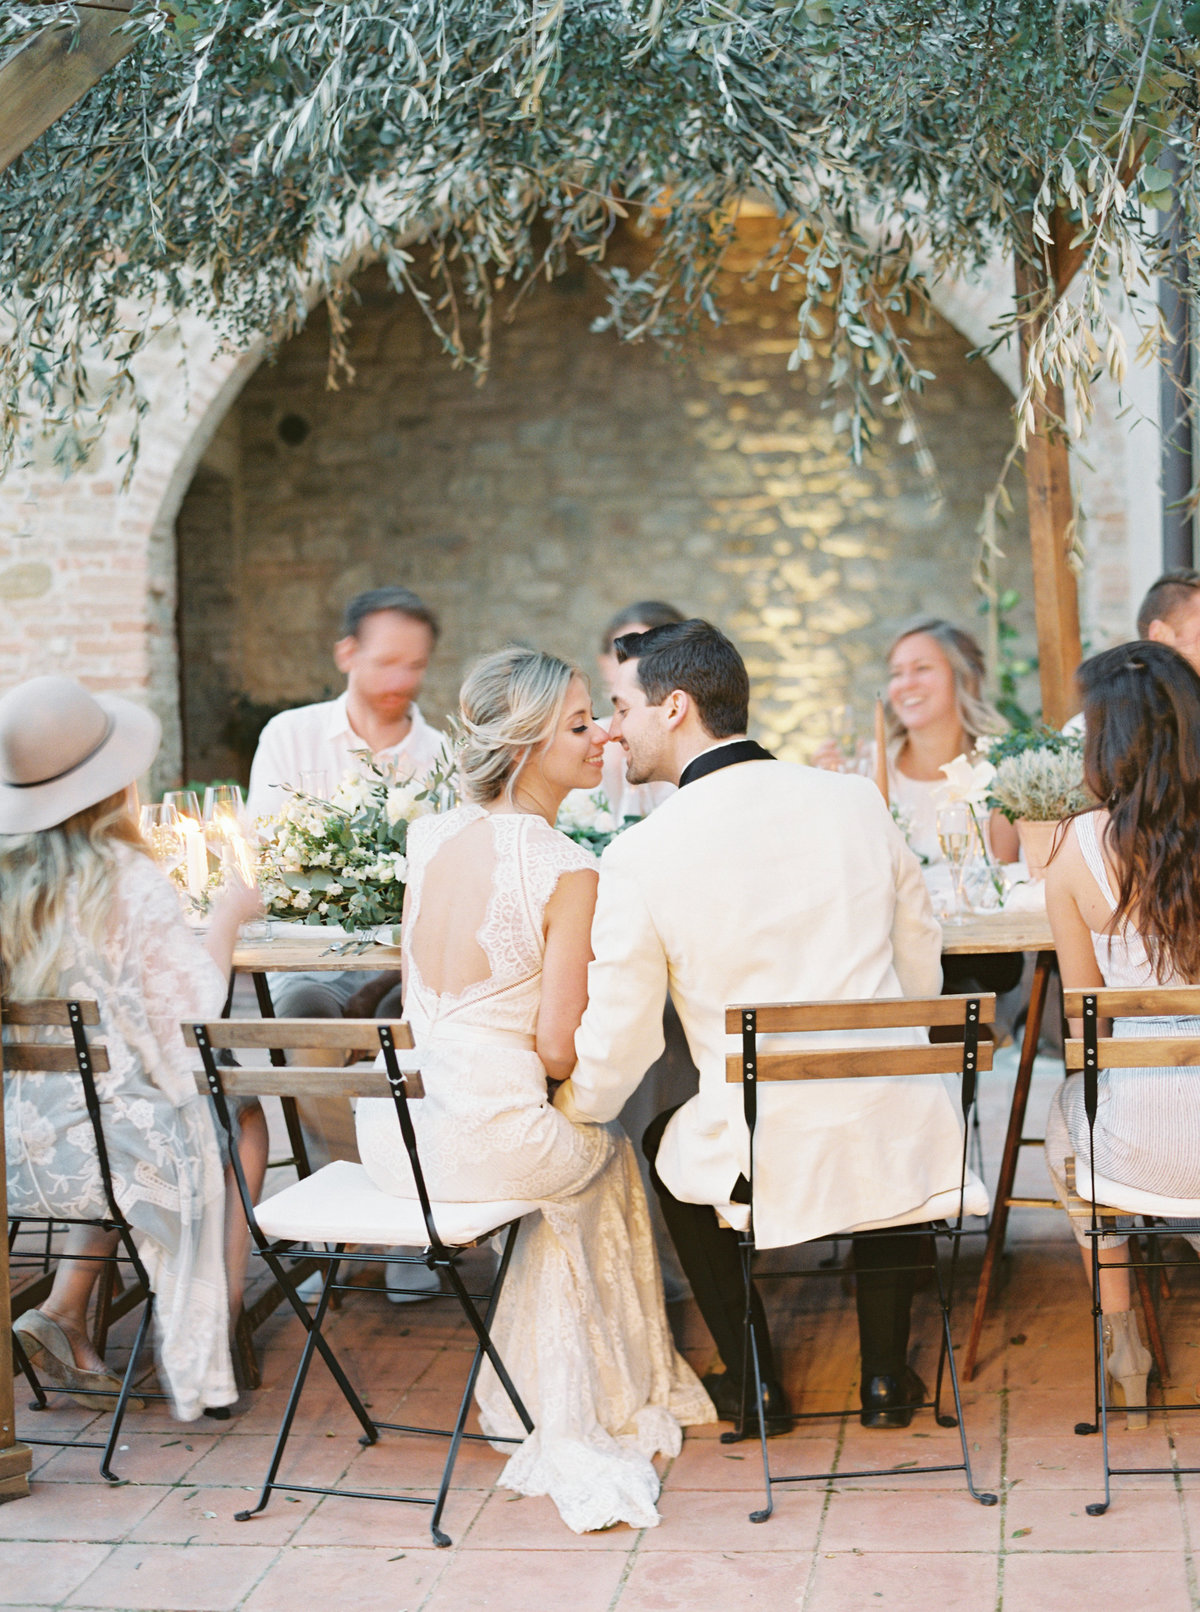 Tuscany Wedding Erica Nick - Lauren Fair Photography366